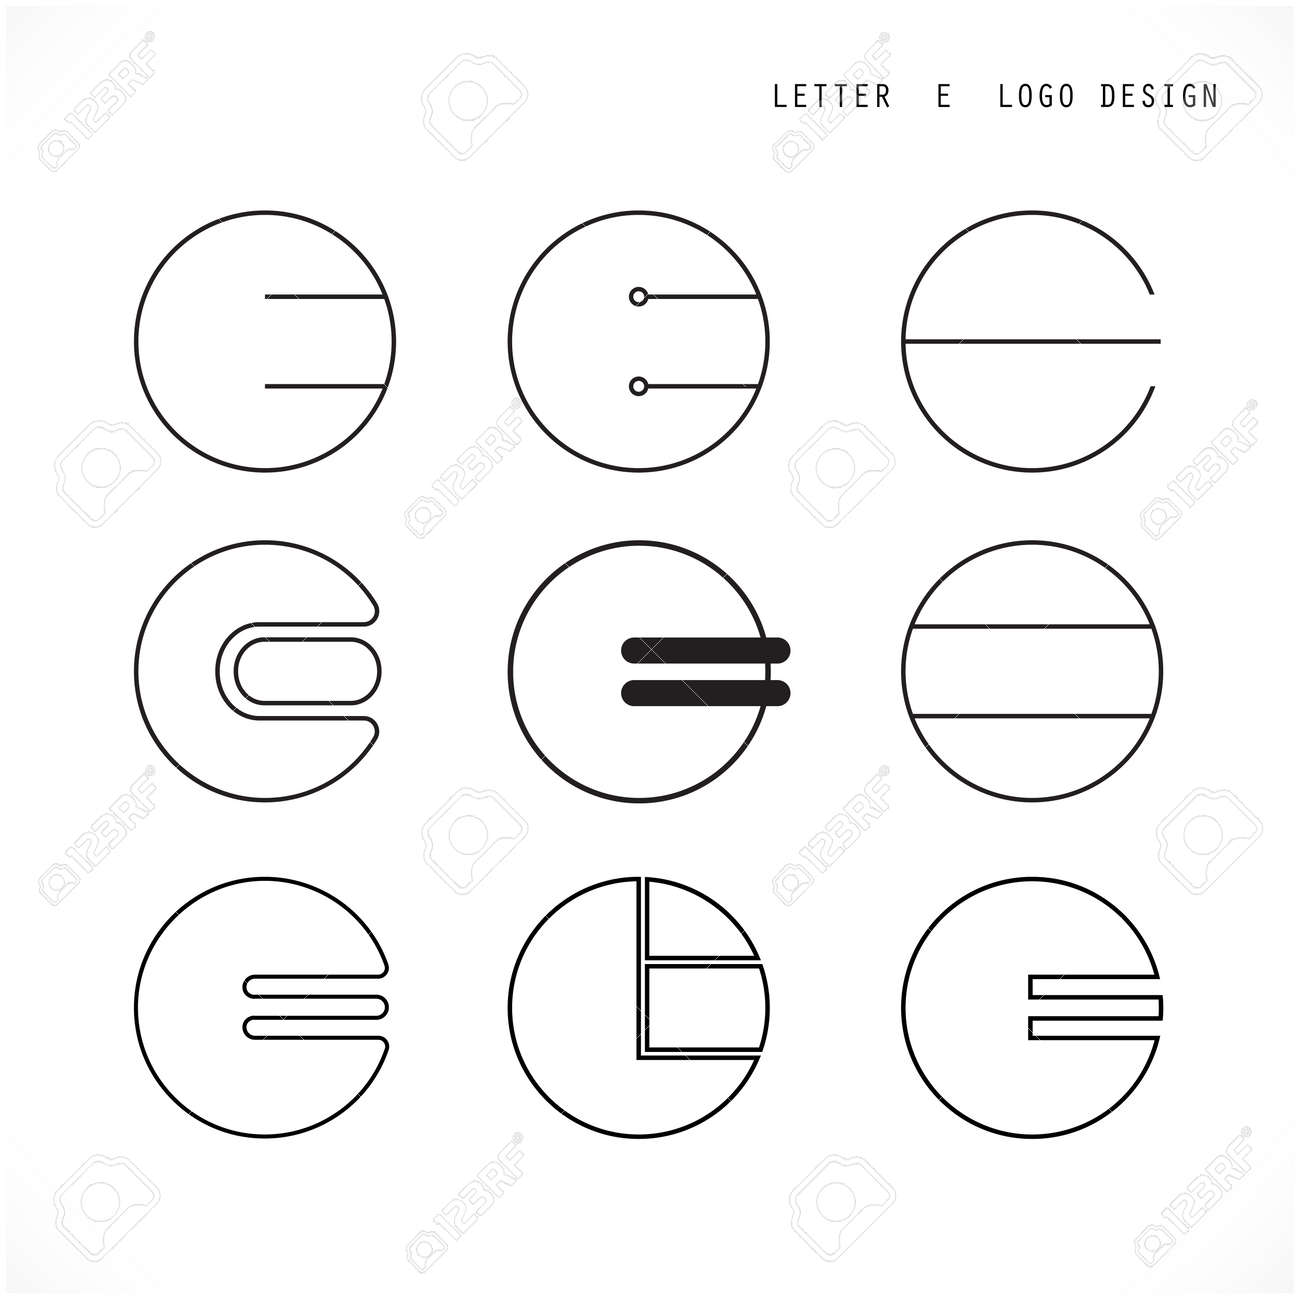 Creative Letter E Icon Abstract Logo Design Vector Template